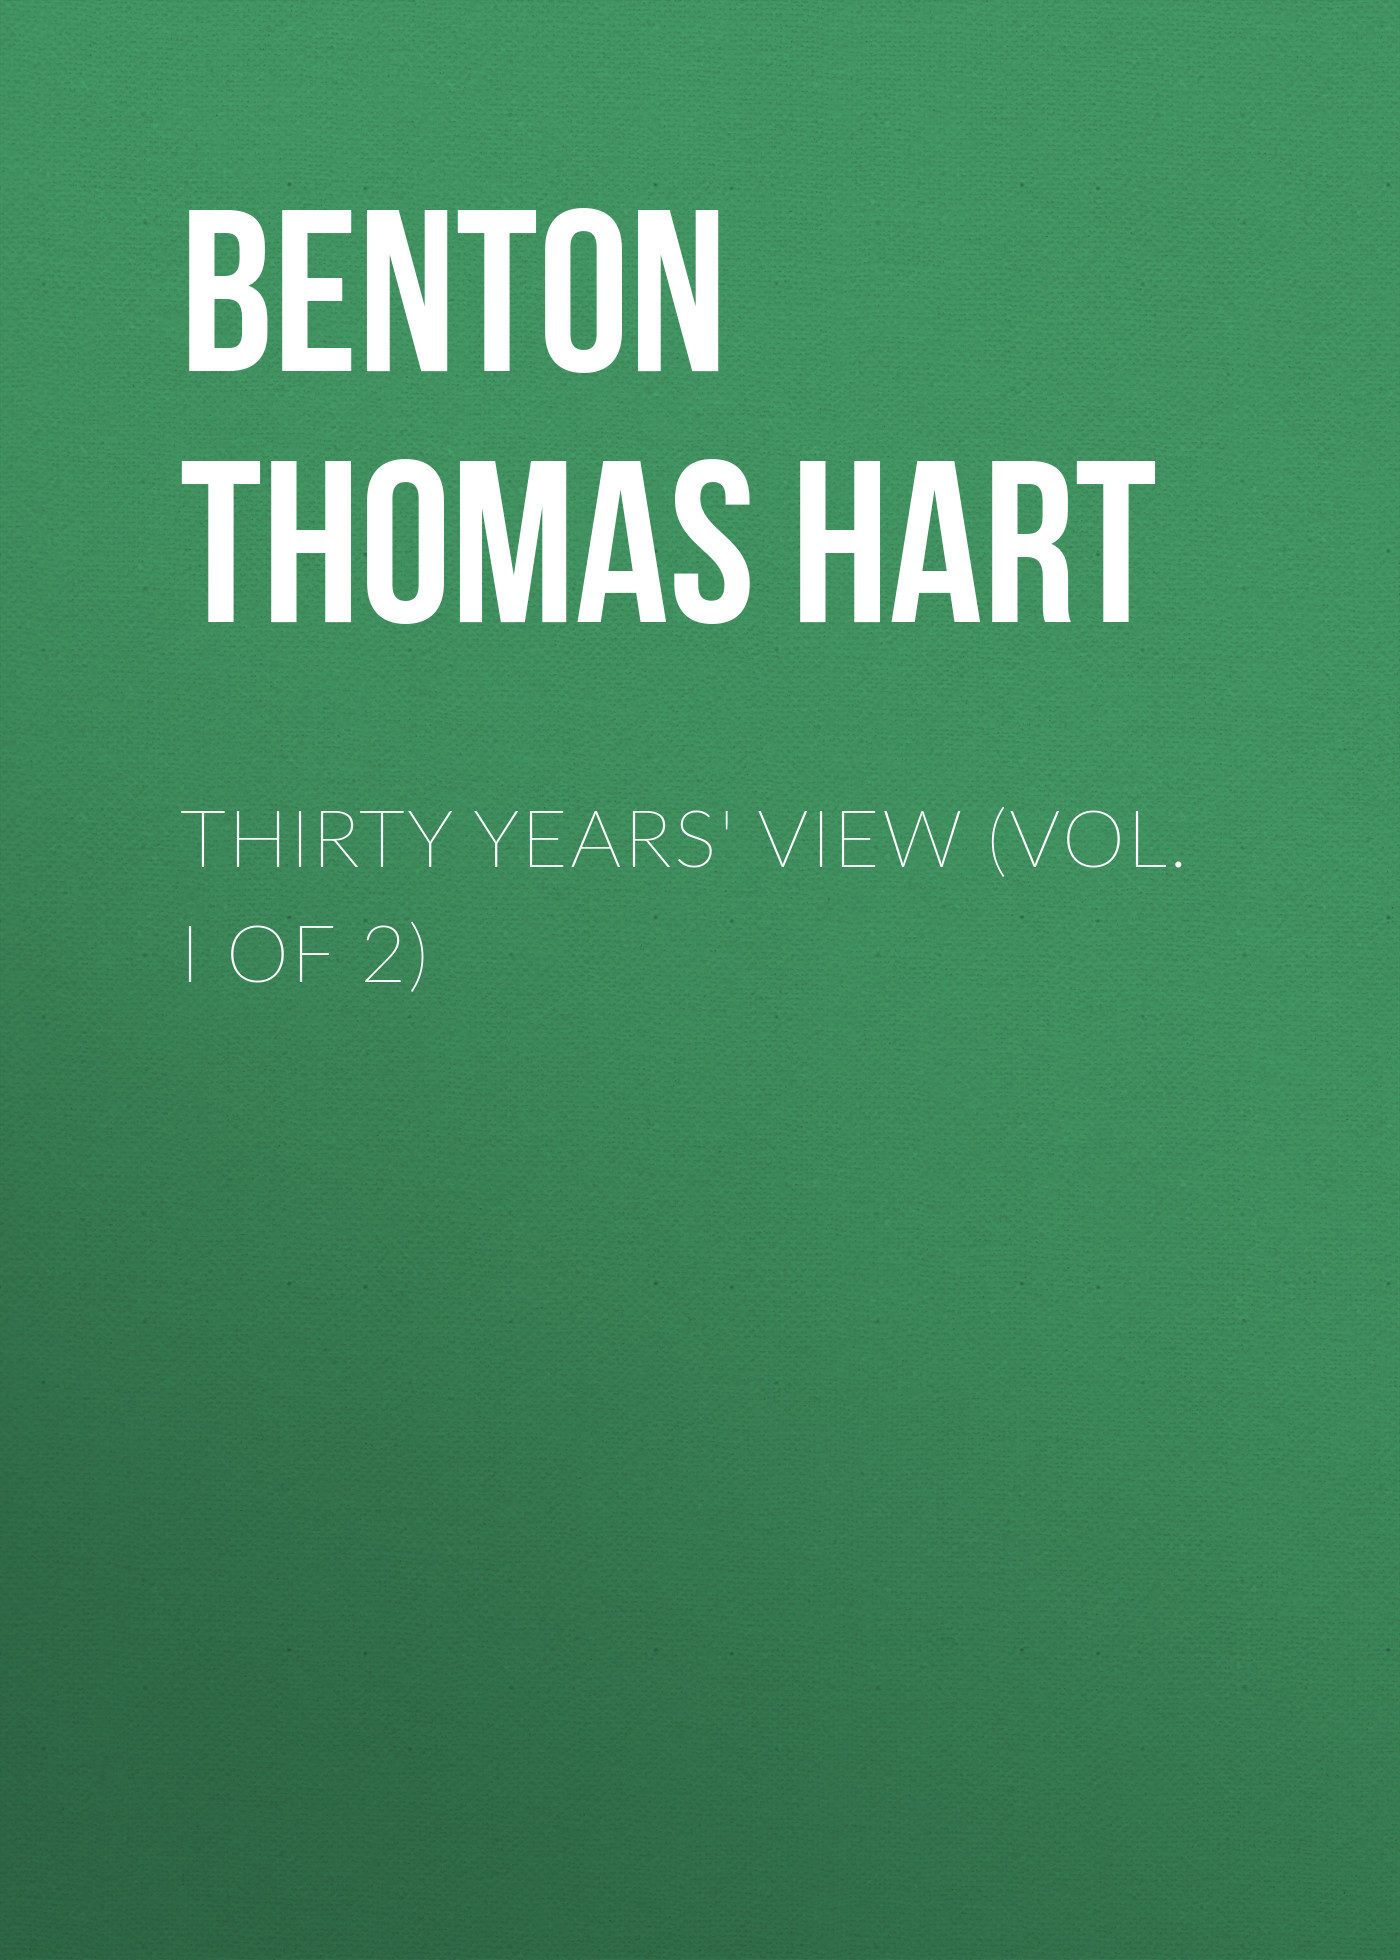 Benton Thomas Hart Thirty Years' View (Vol. I of 2) neil williamson elaine gallagher cameron johnston thirty years of rain